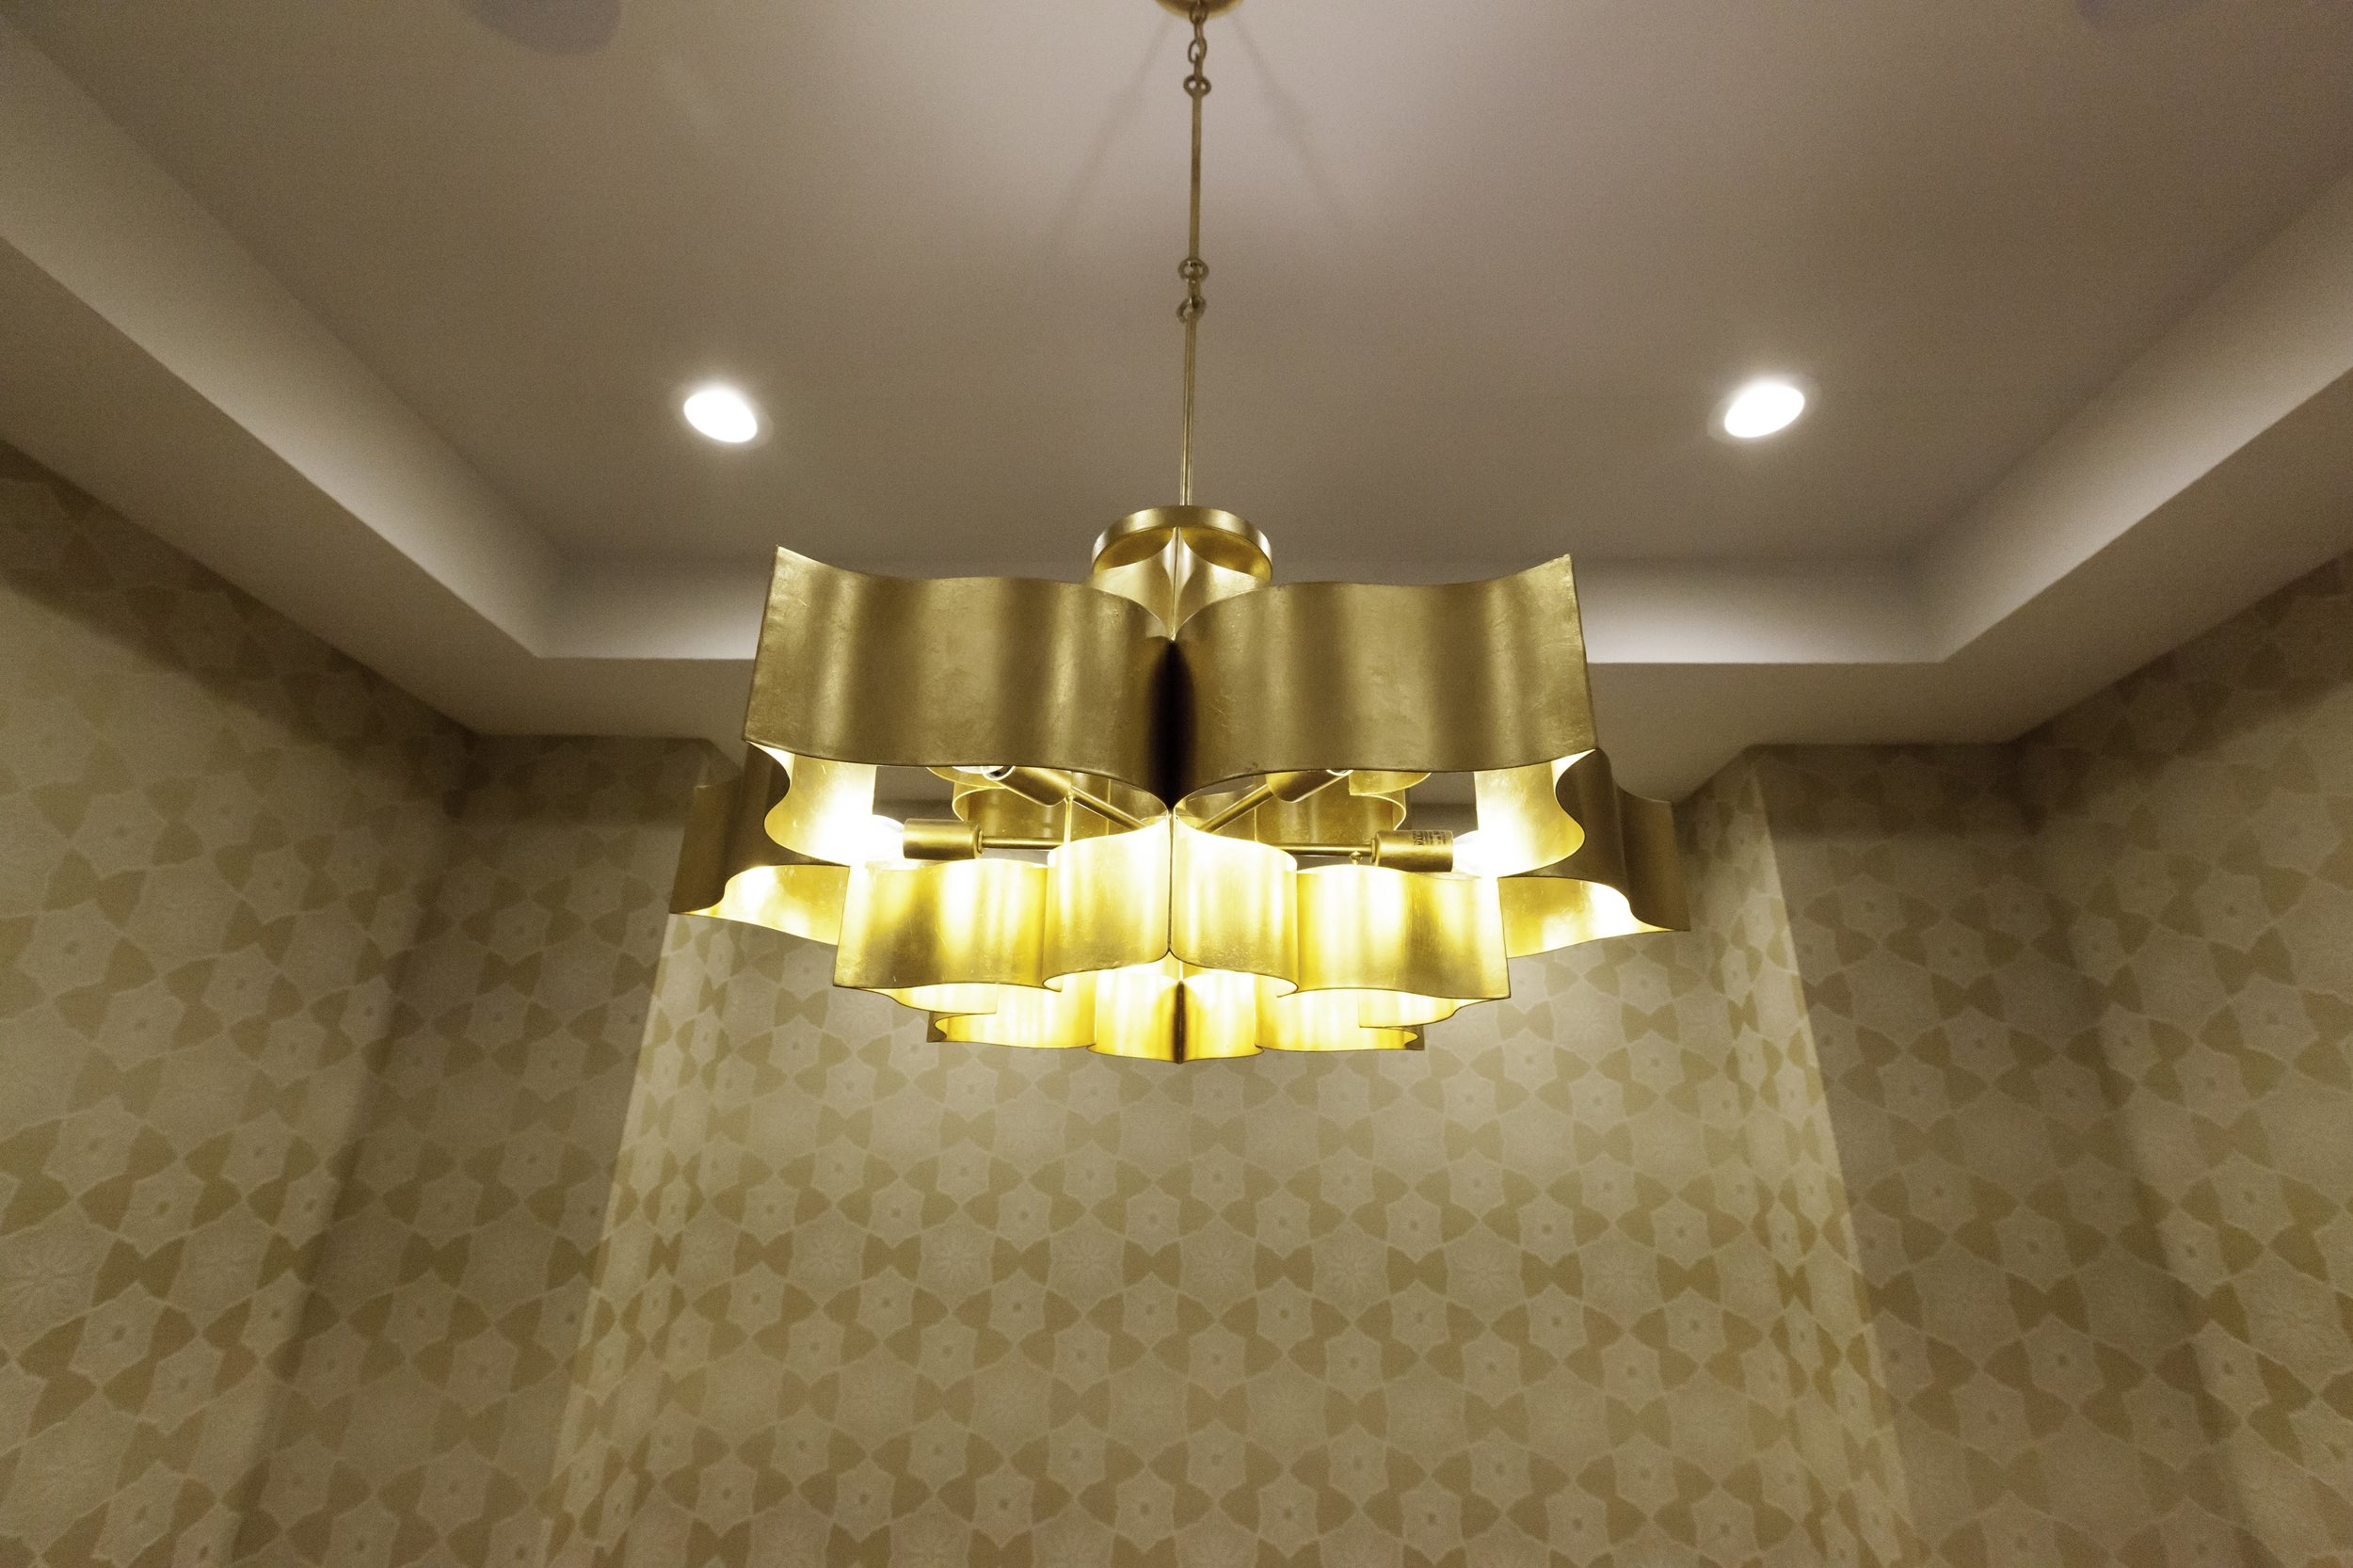 Curry and Company Chandelier in Dining Room